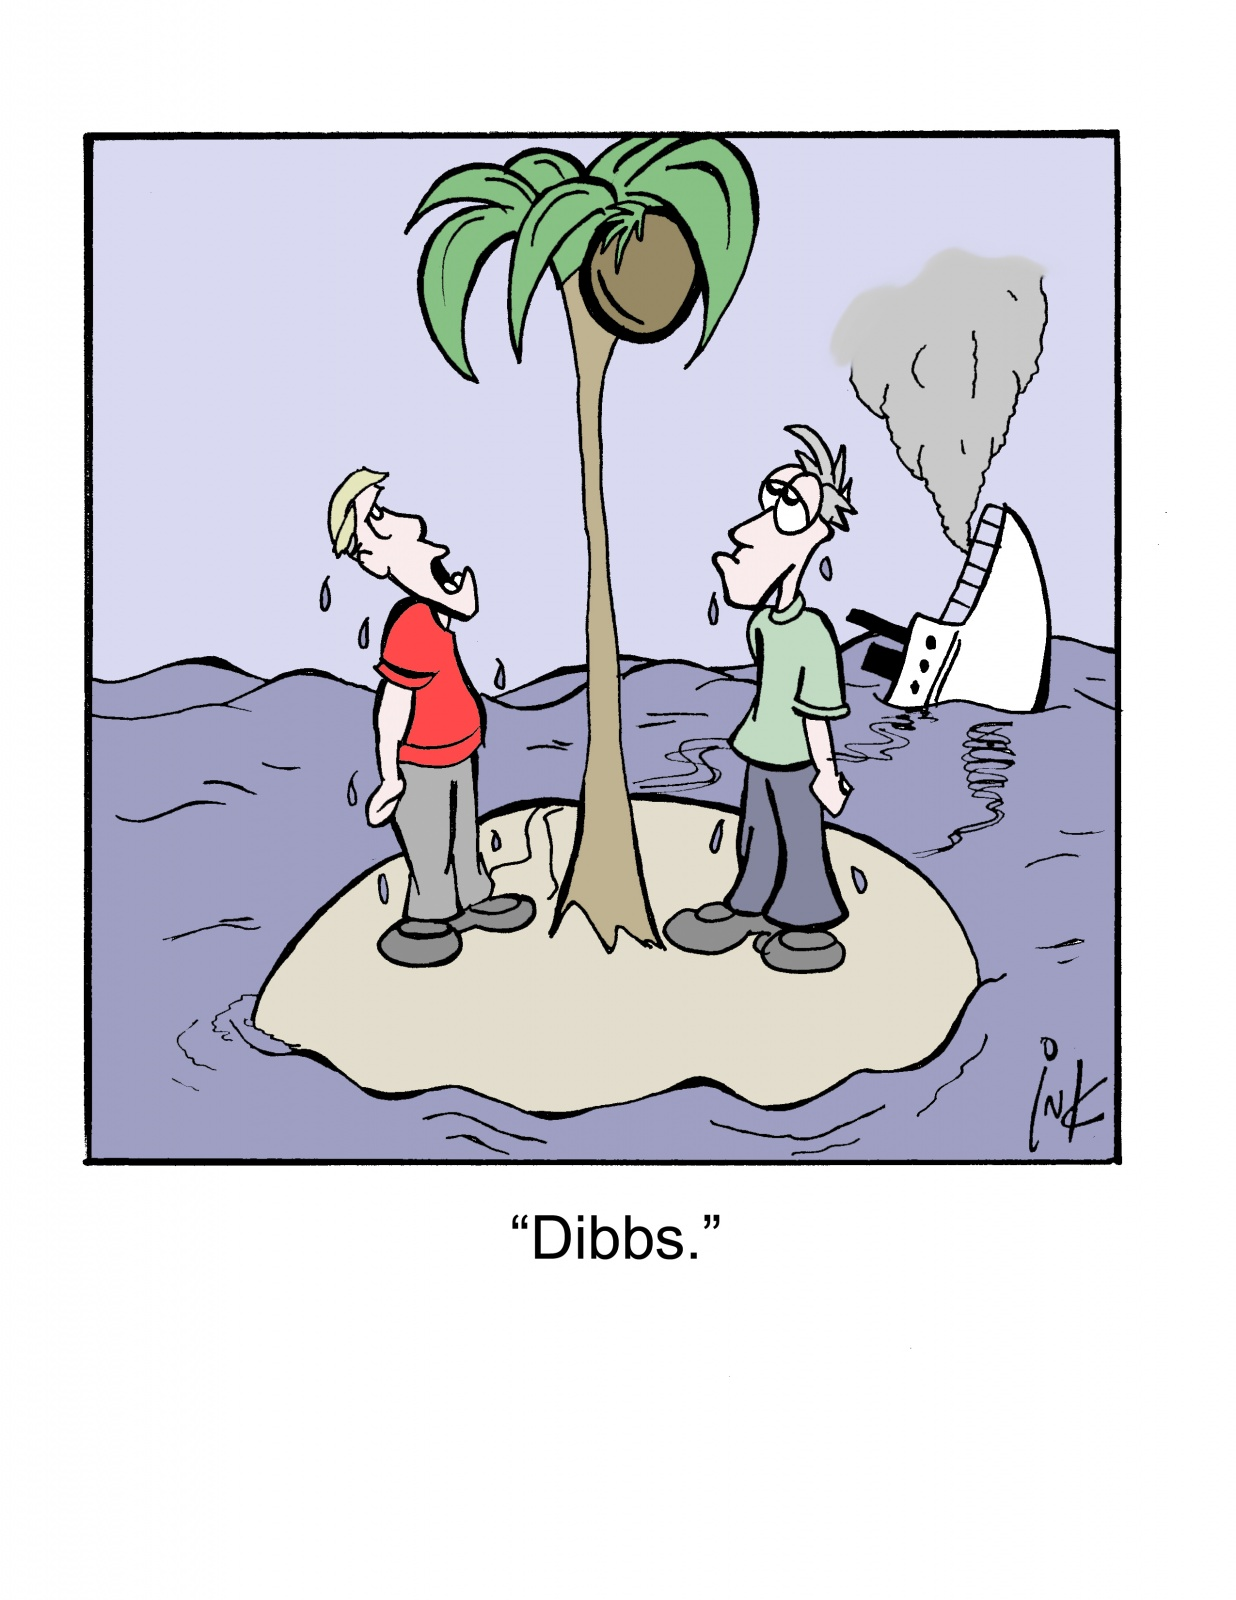 Click image for larger version  Name:Dibbs.jpg Views:128 Size:308.8 KB ID:22966